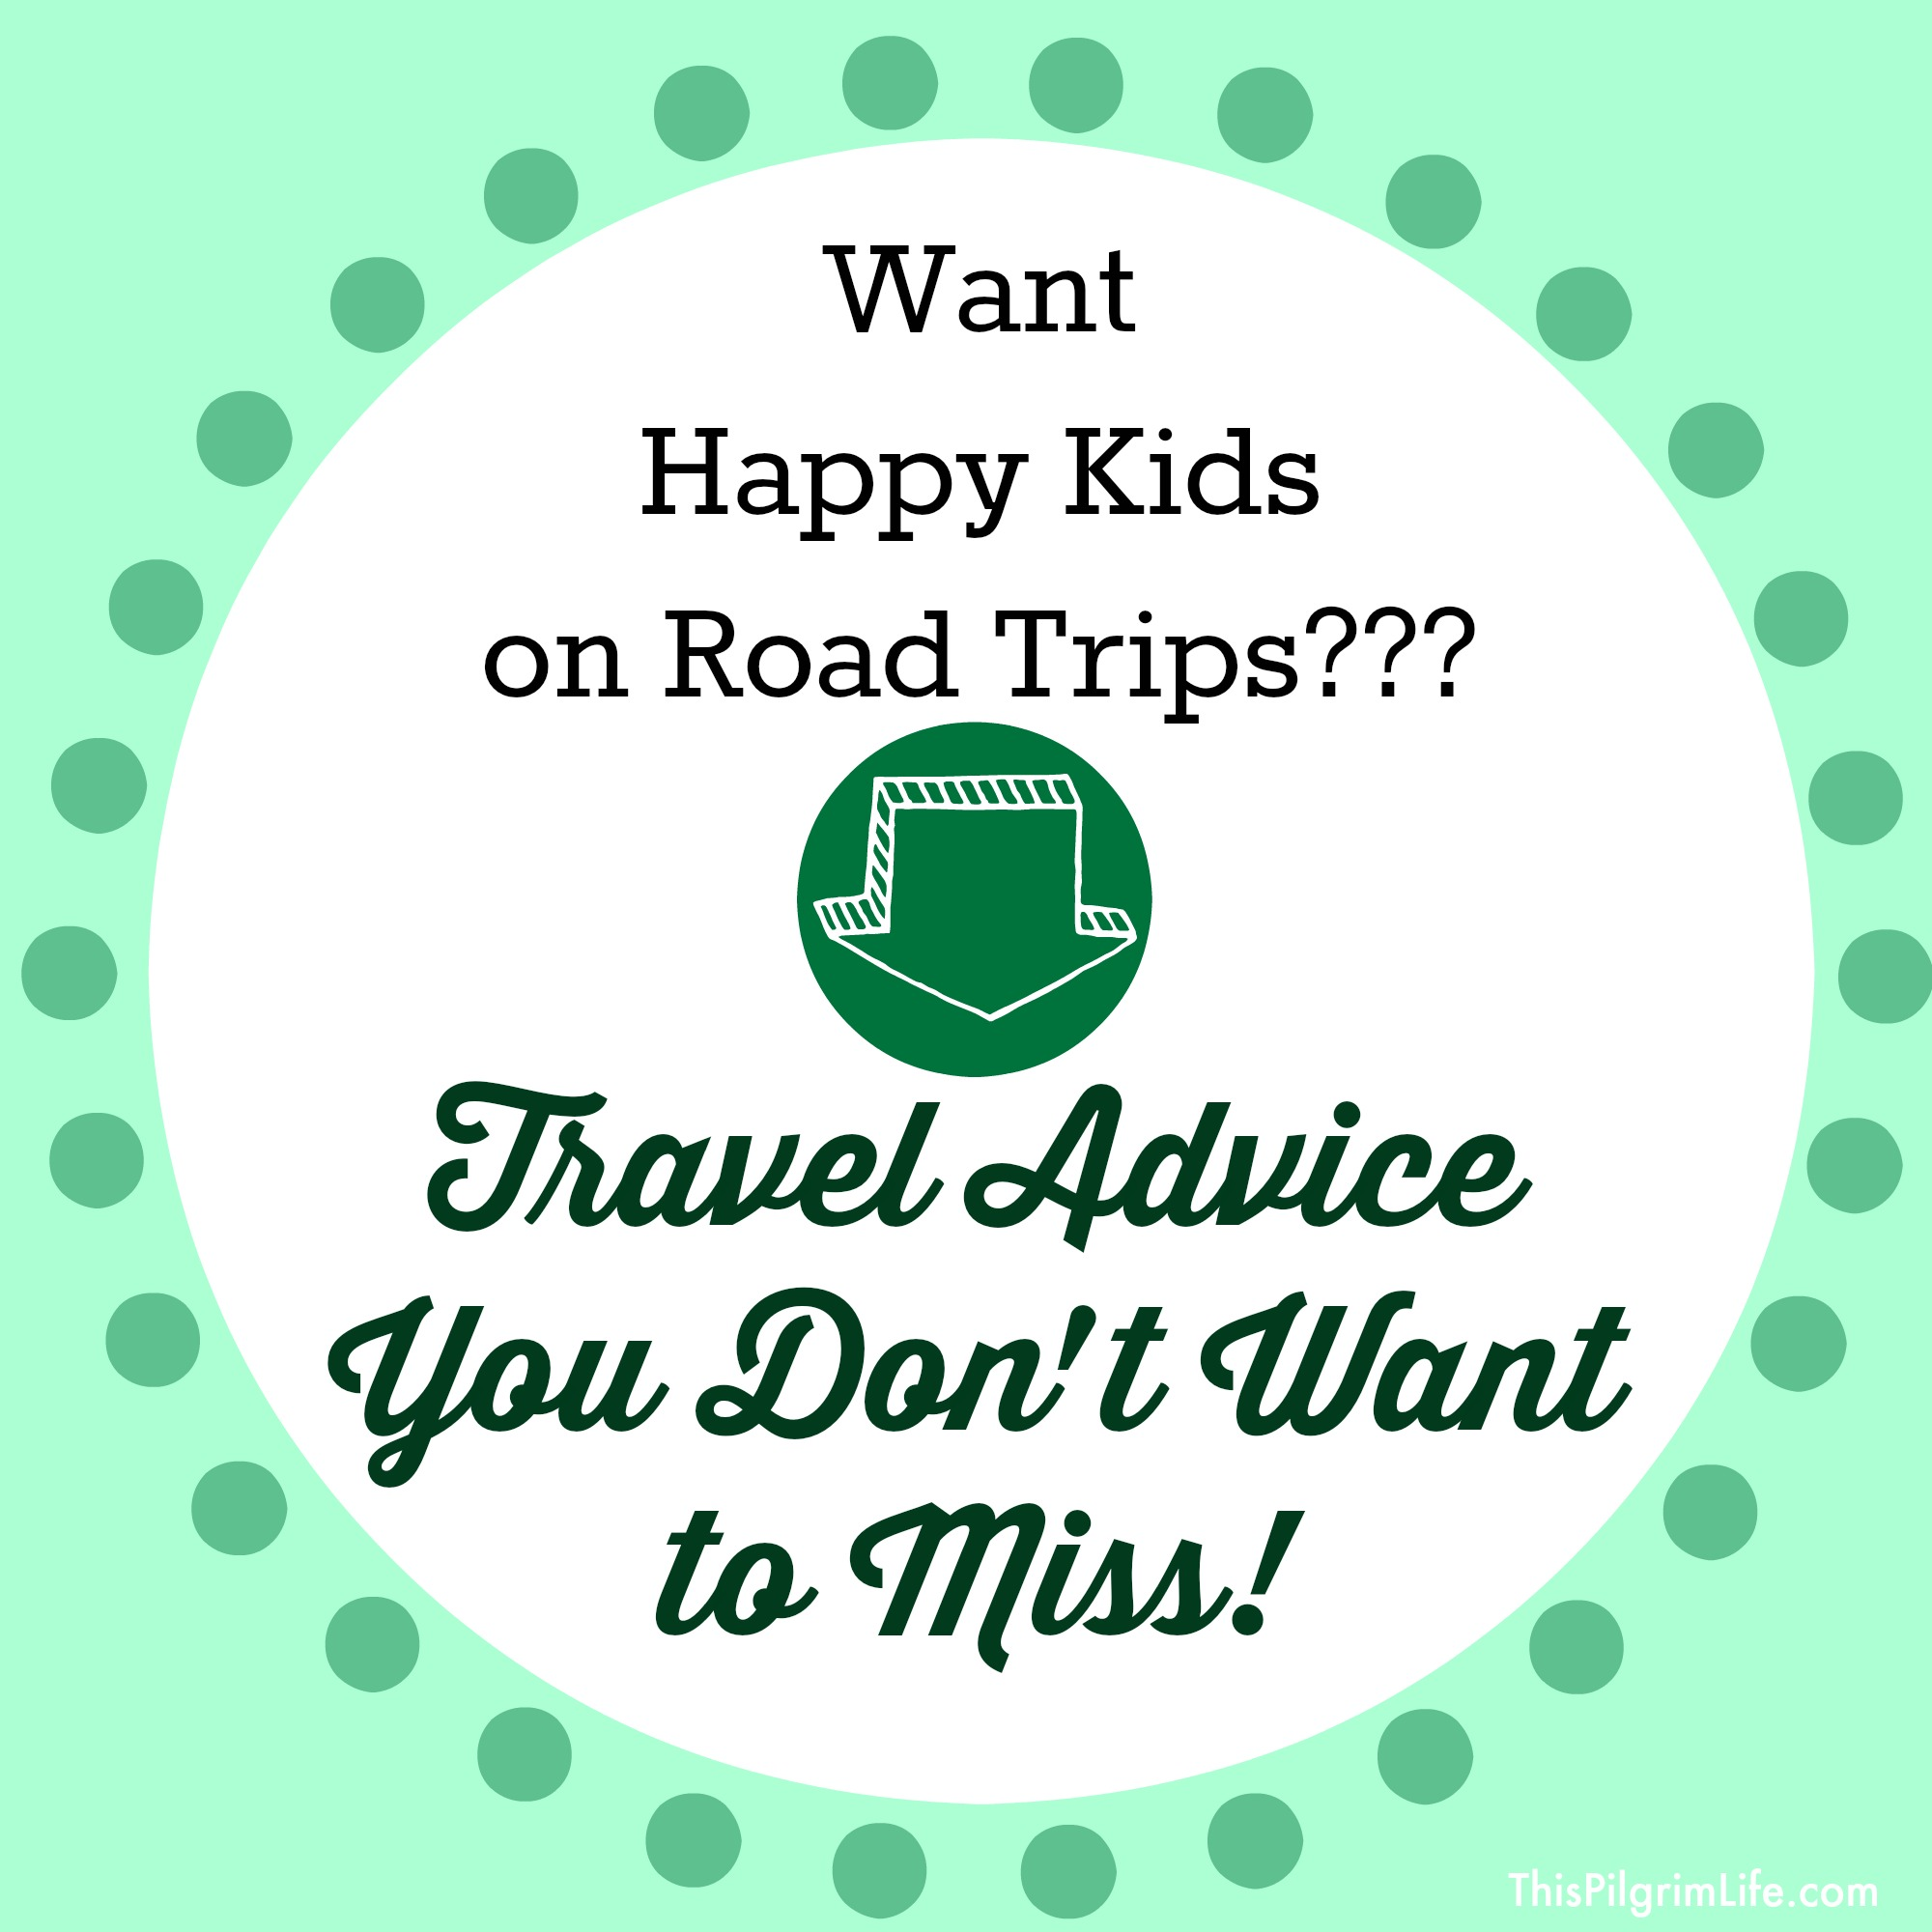 Want Happy Kids on Road Trips? Travel Advice You Don't Want to Miss!